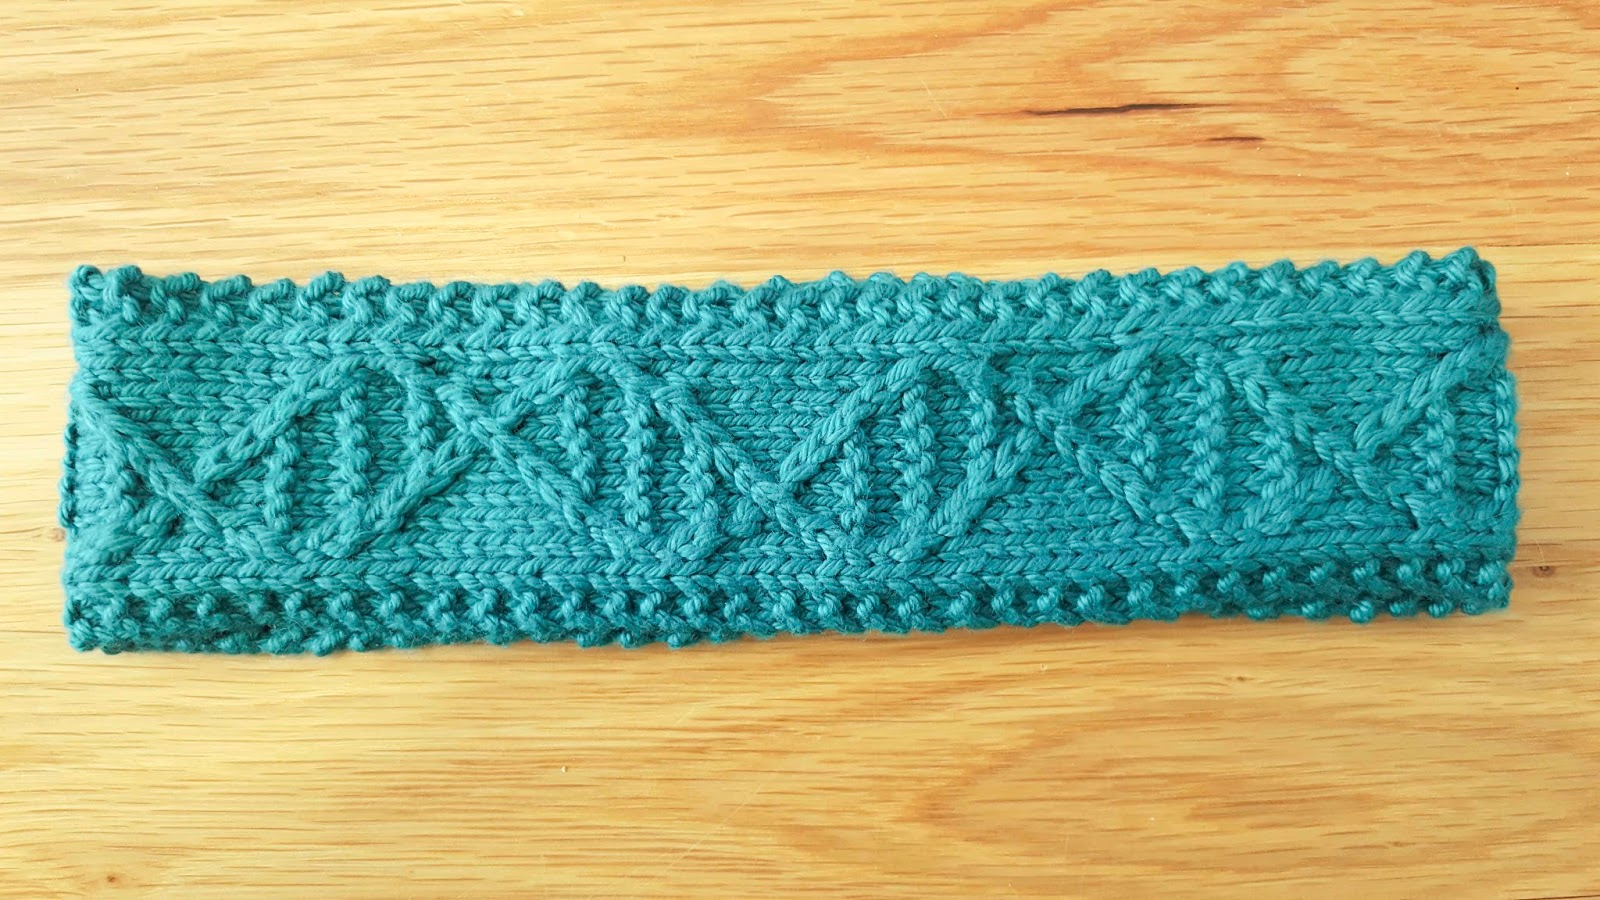 ChemKnits: GENEie Plasmid - A DNA Cable Headband